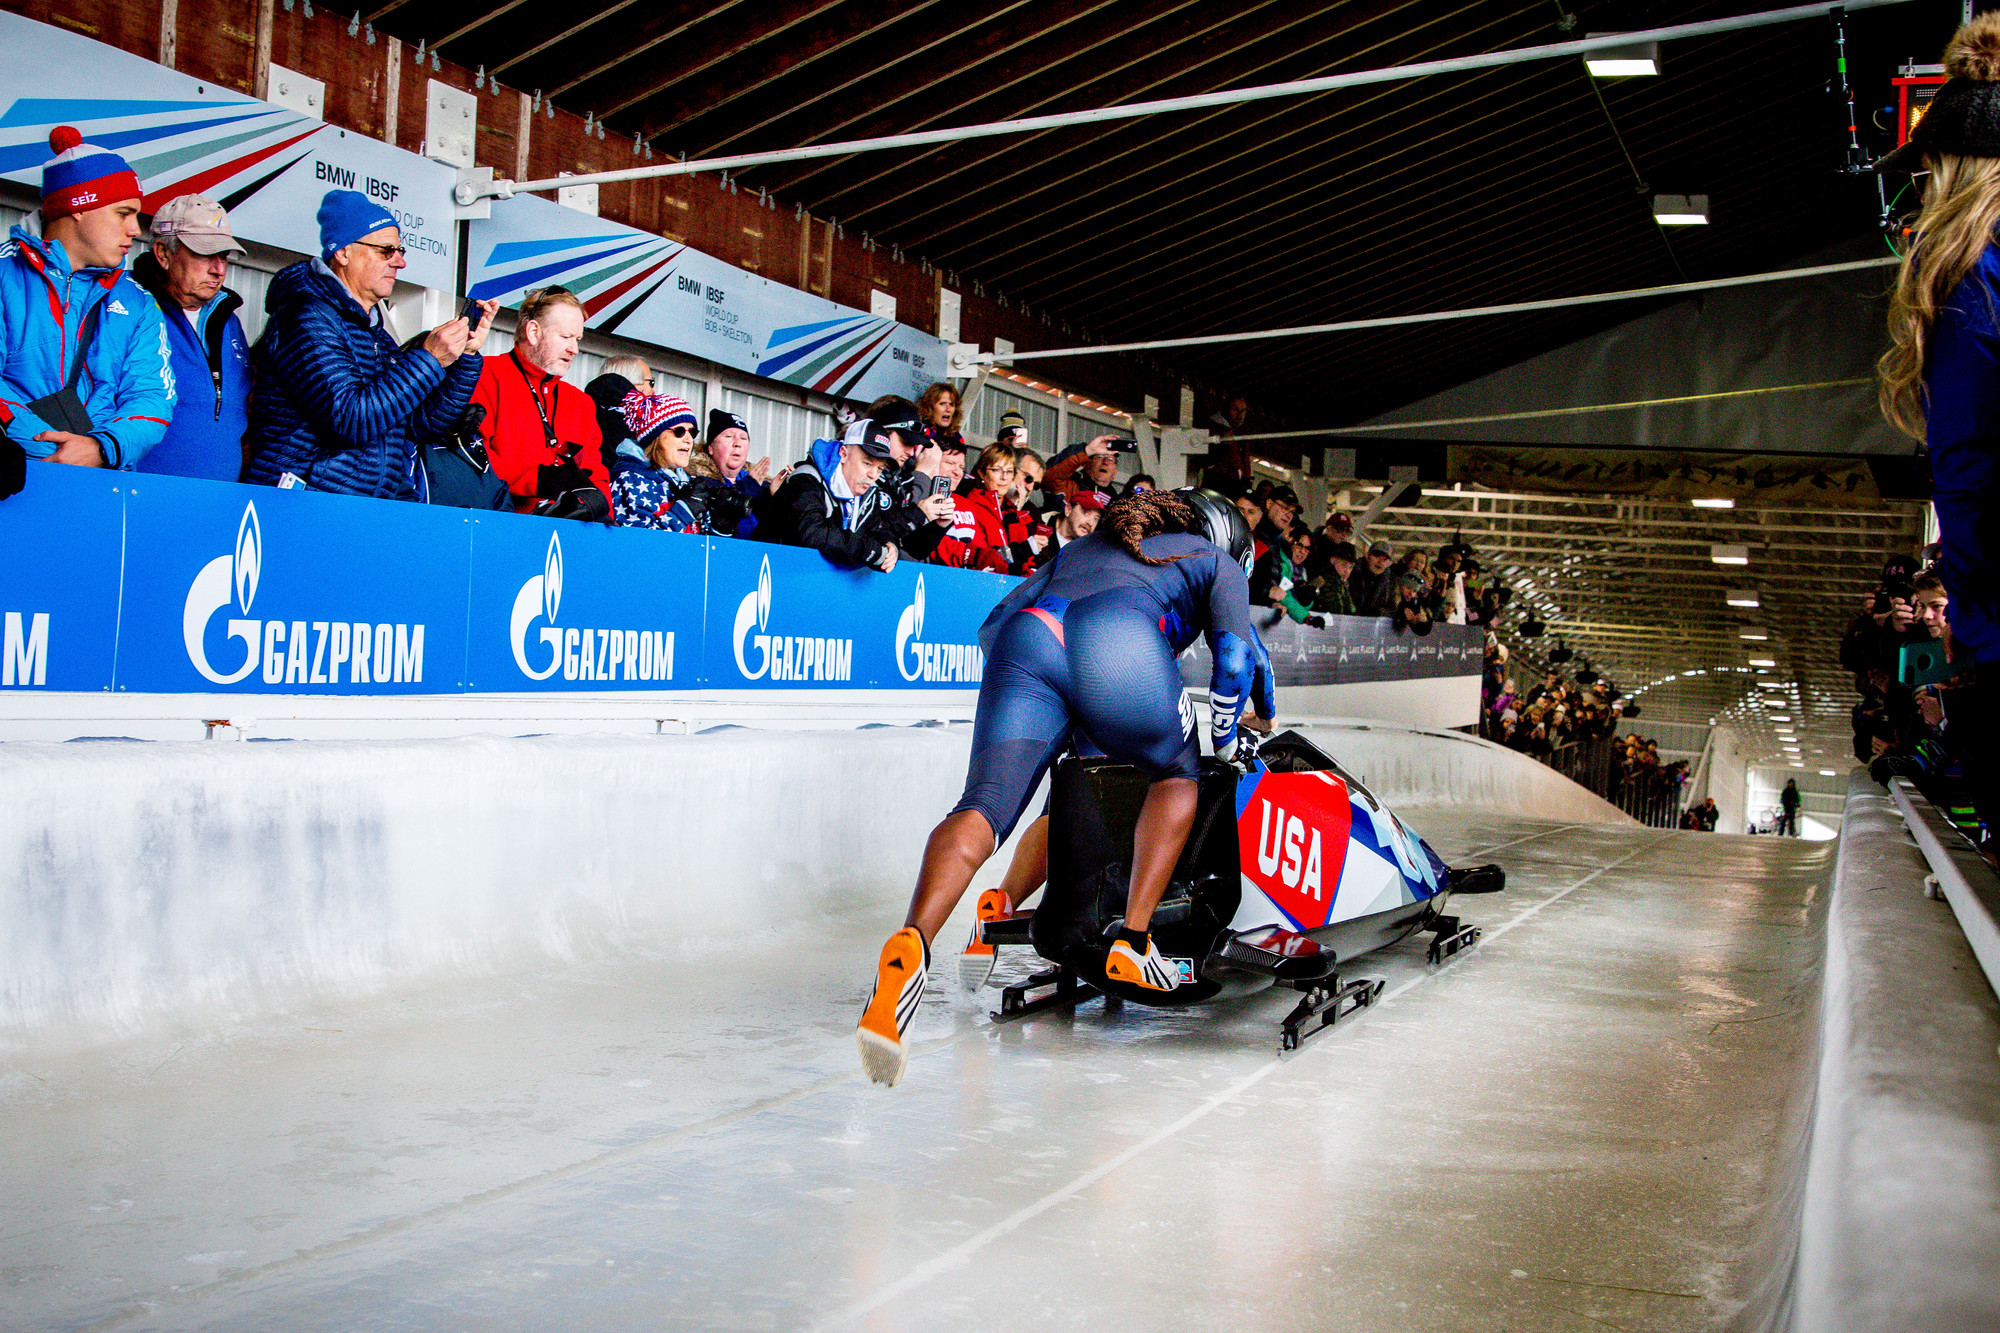 Bobsled team at the start